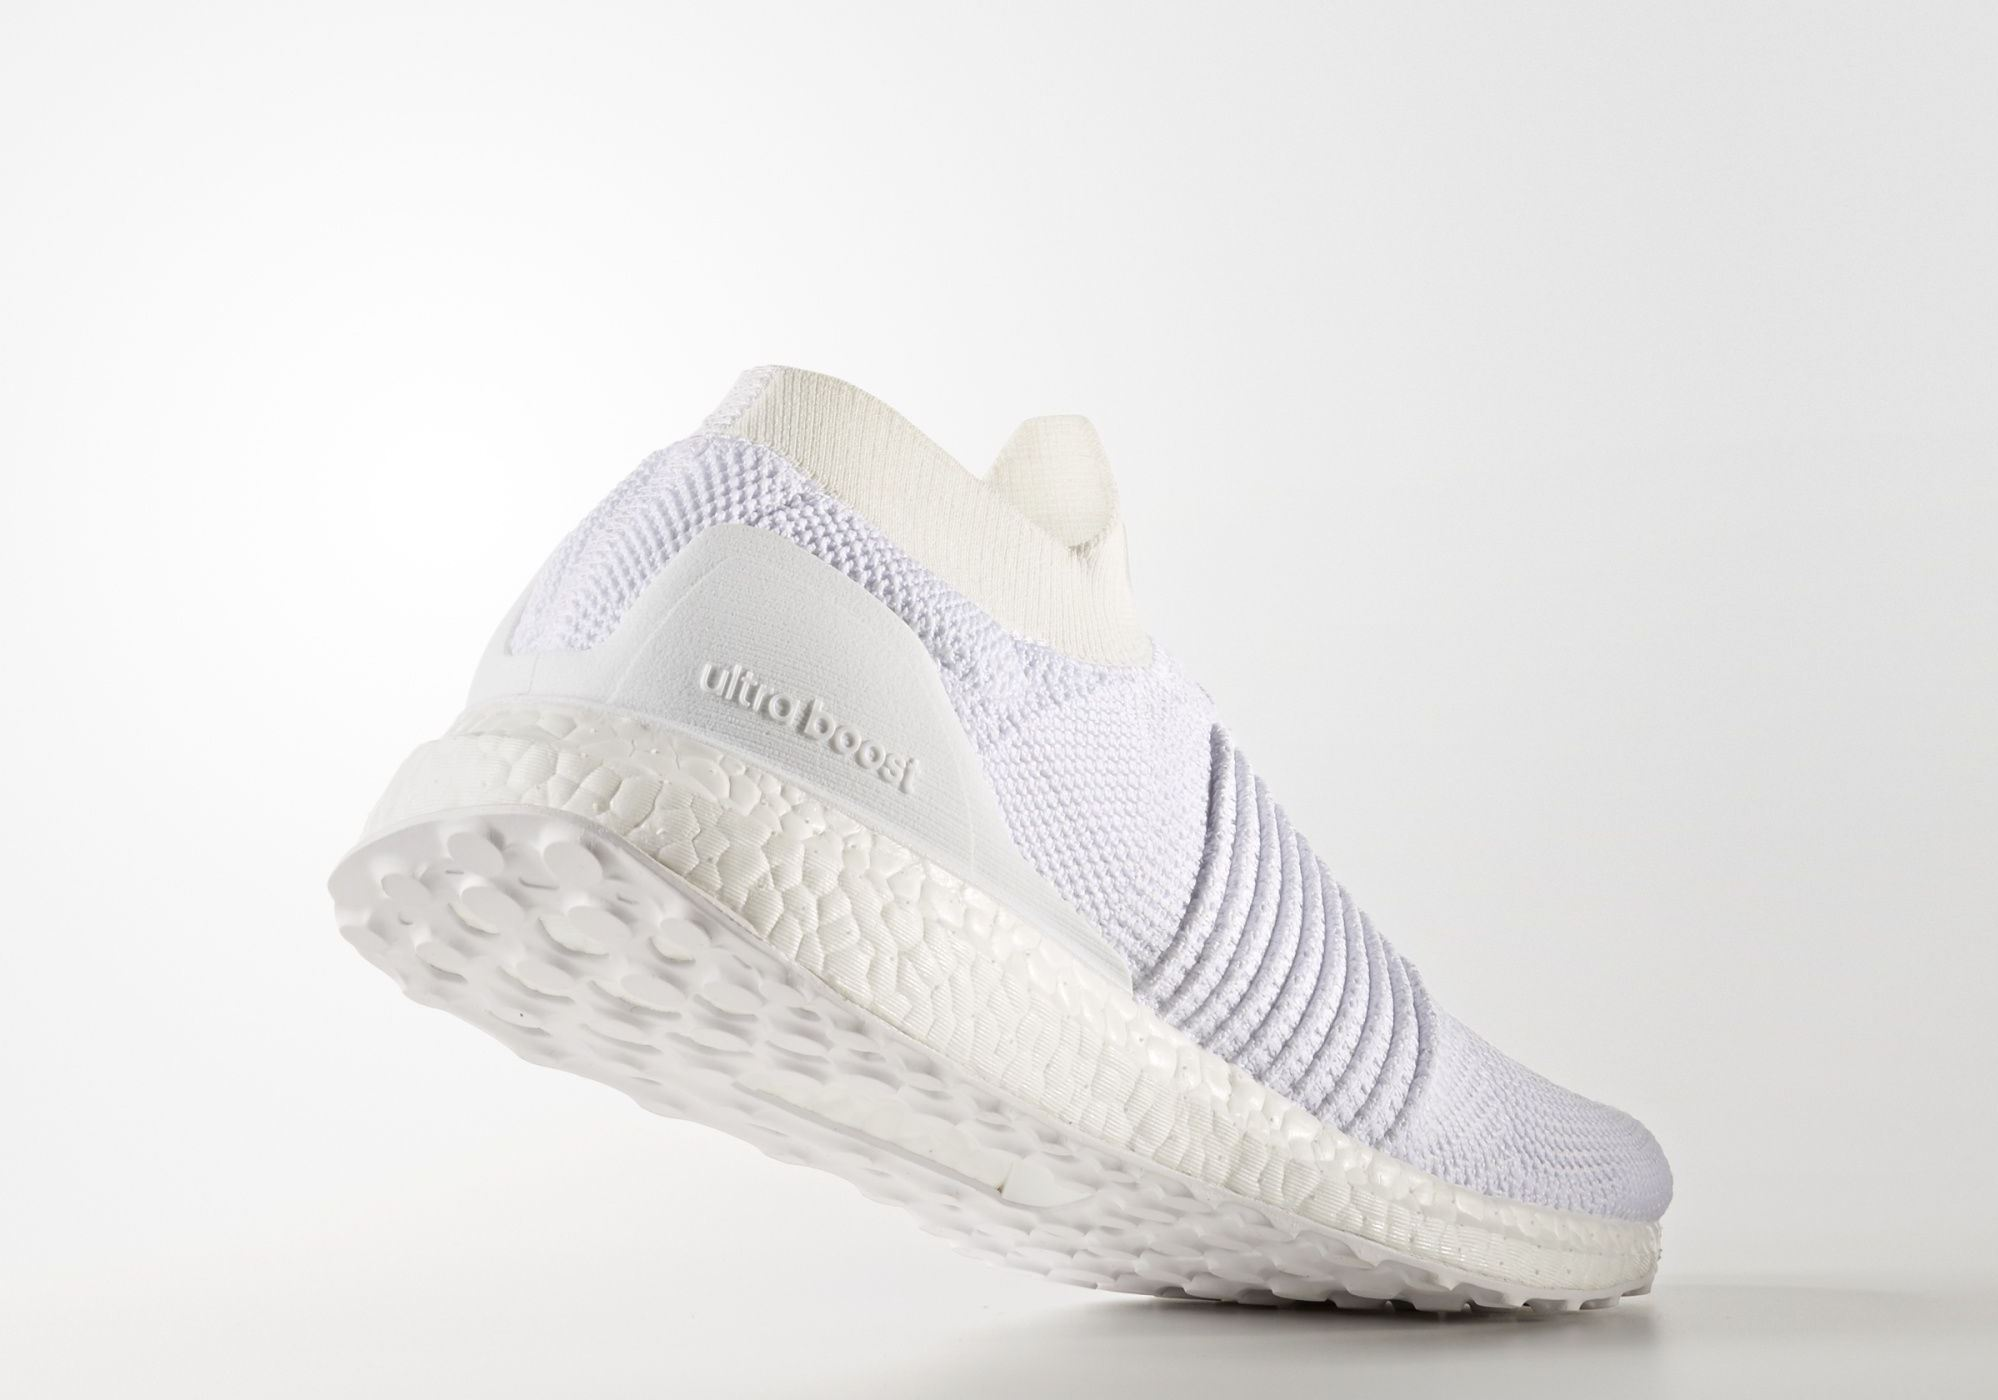 The Goes adidas UltraBoost Goes The Laceless in Triple Blanc for Summer f97ac7